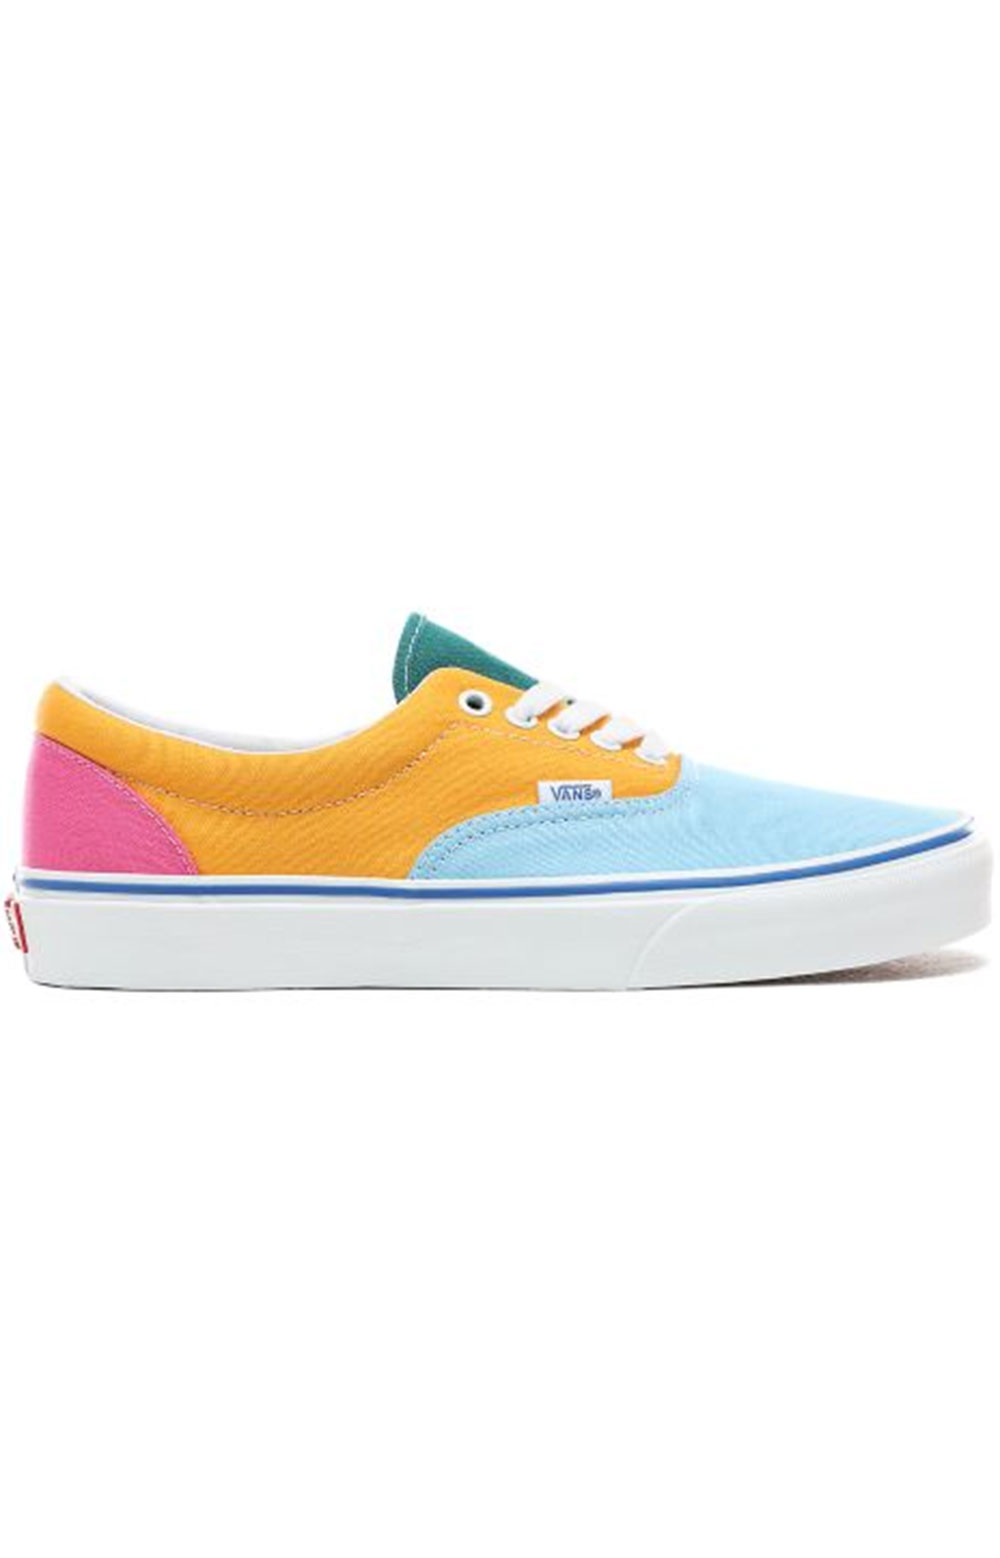 (8FRVOP) Canvas Era Shoe - Multi/Bright